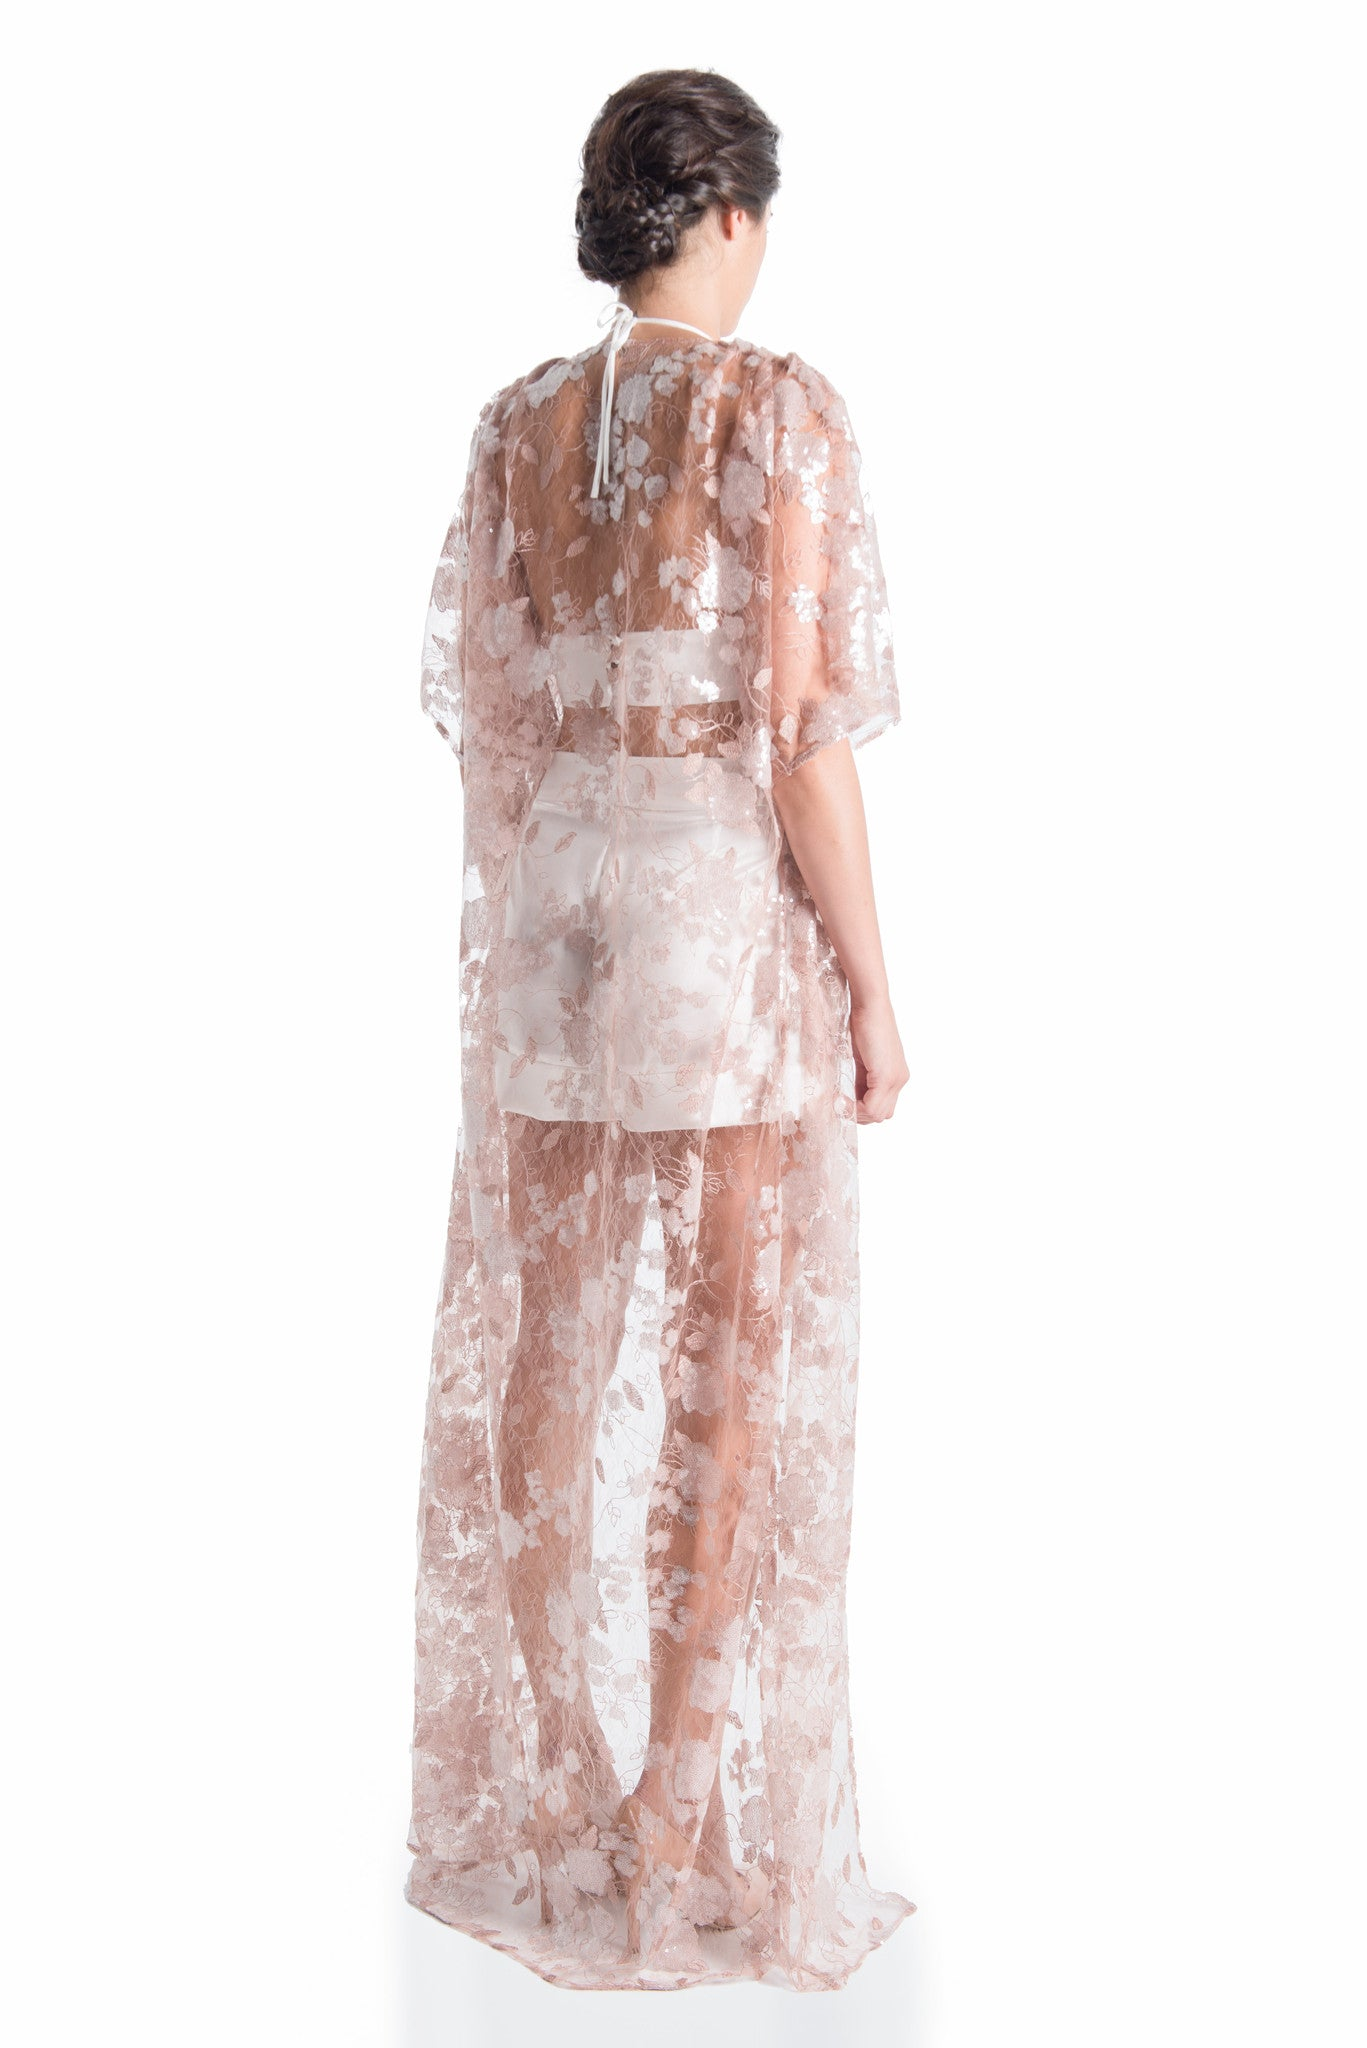 Venetian Lace Kimono - ROMANTIC DUSTY | HAUS OF SONG